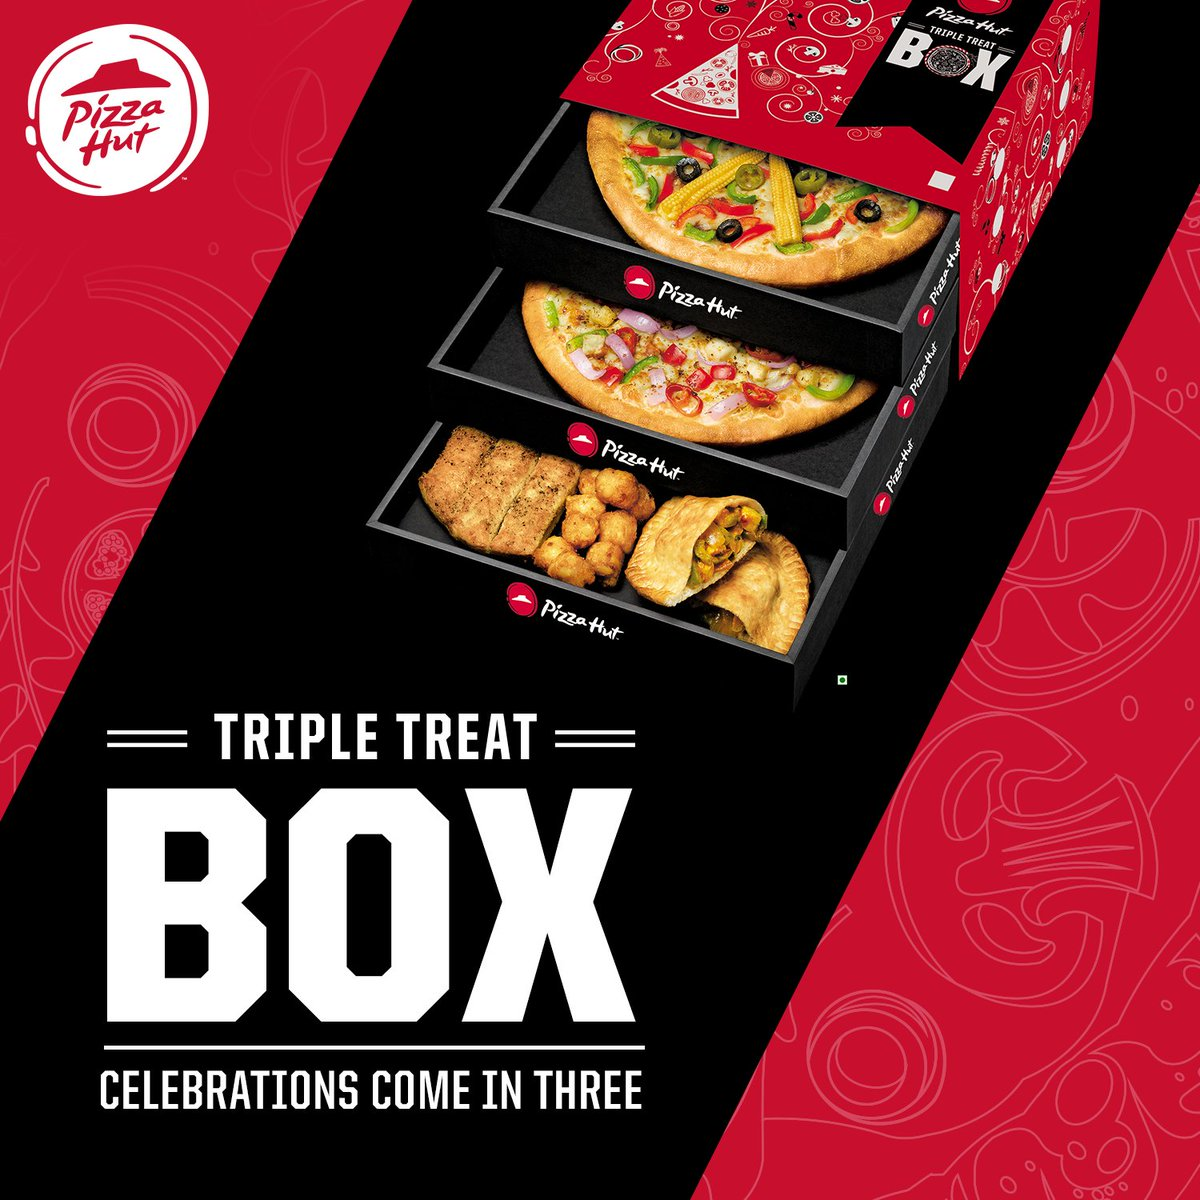 For any kind of celebration, your menu is sorted with the tasty TripleTreatBox Order now https t